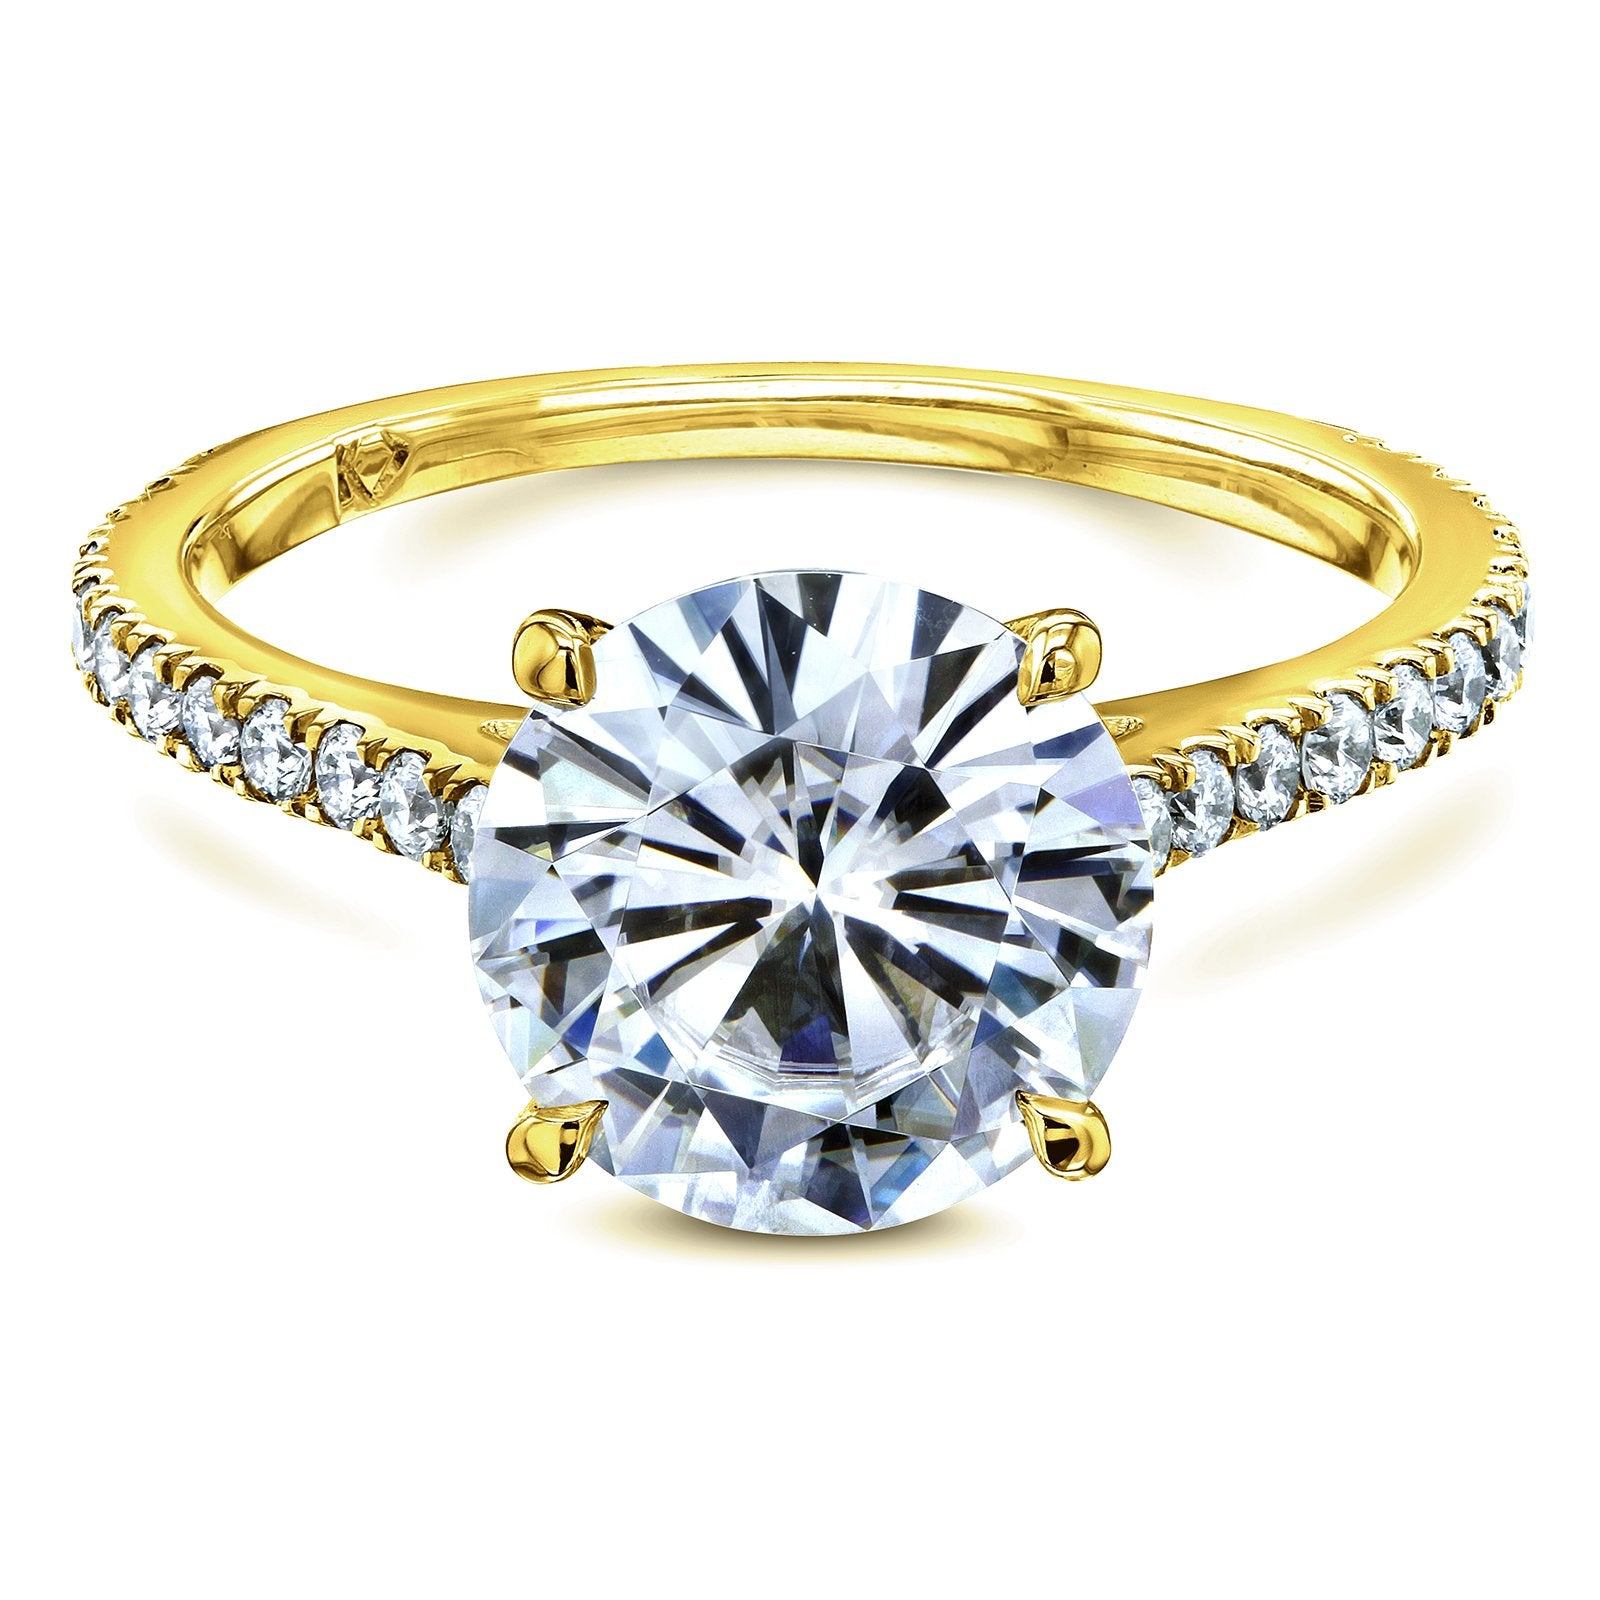 Top Basket Cathedral 9mm Moissanite and Diamond Ring - 4.0 yellow-gold Kobelli H-I